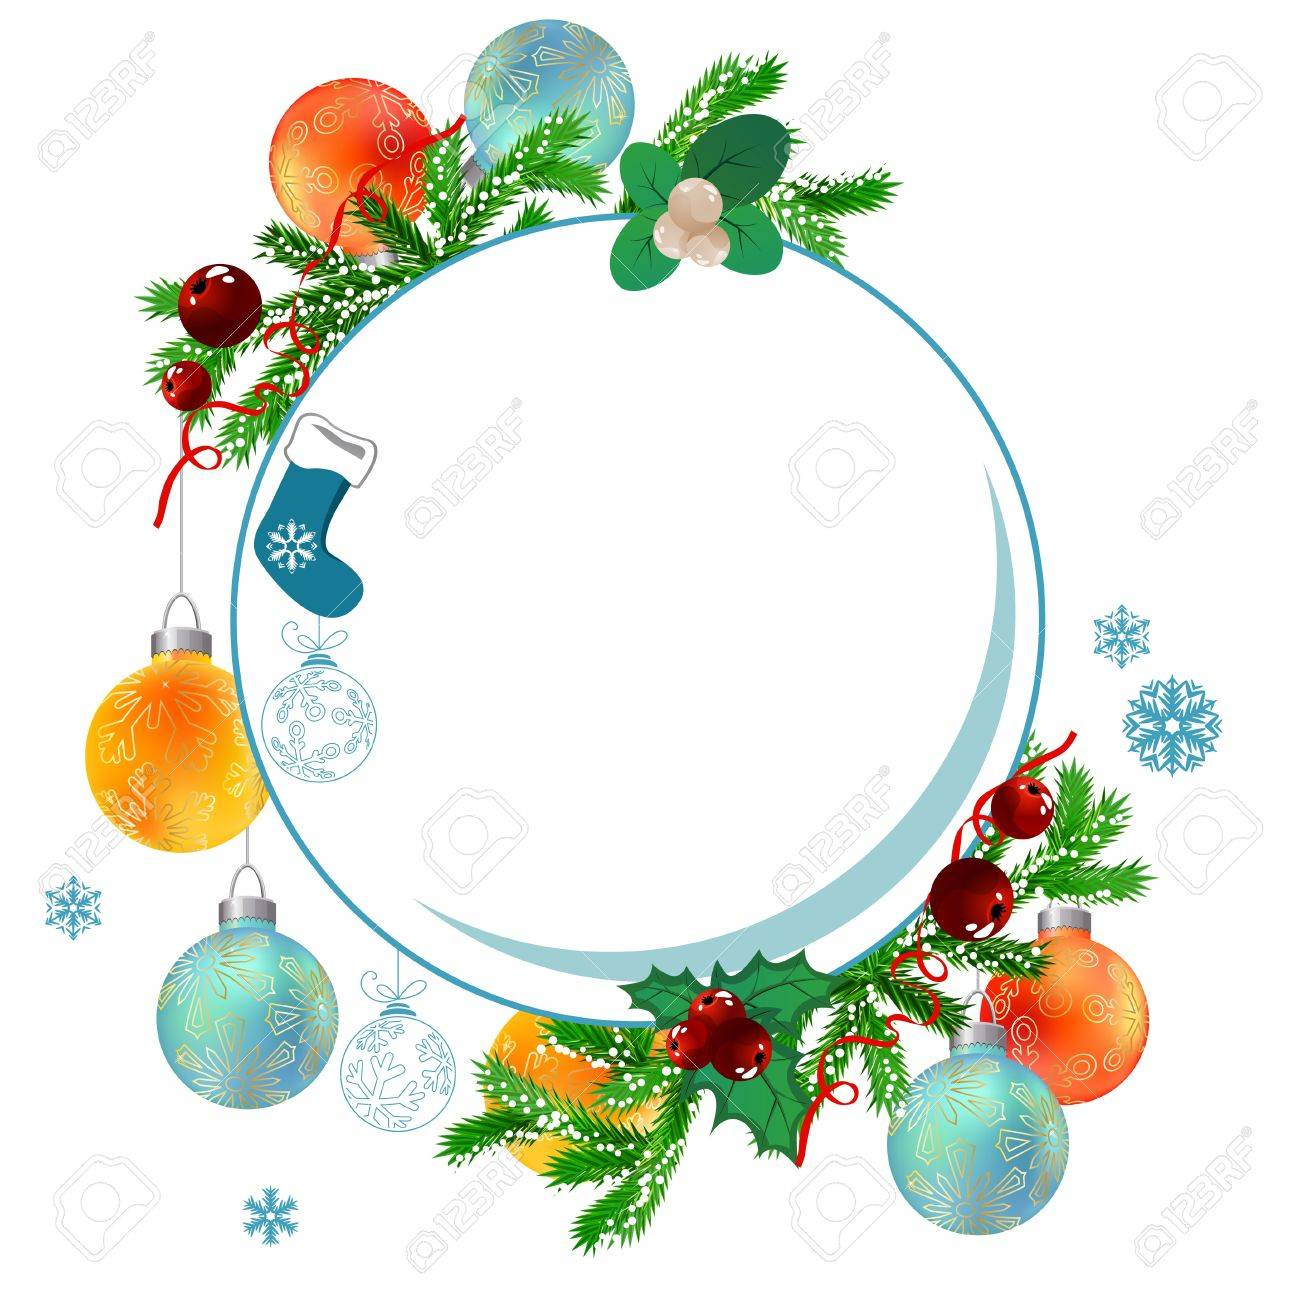 Christmas Frame Clipart.Christmas Frame With Balls And Fir Branches